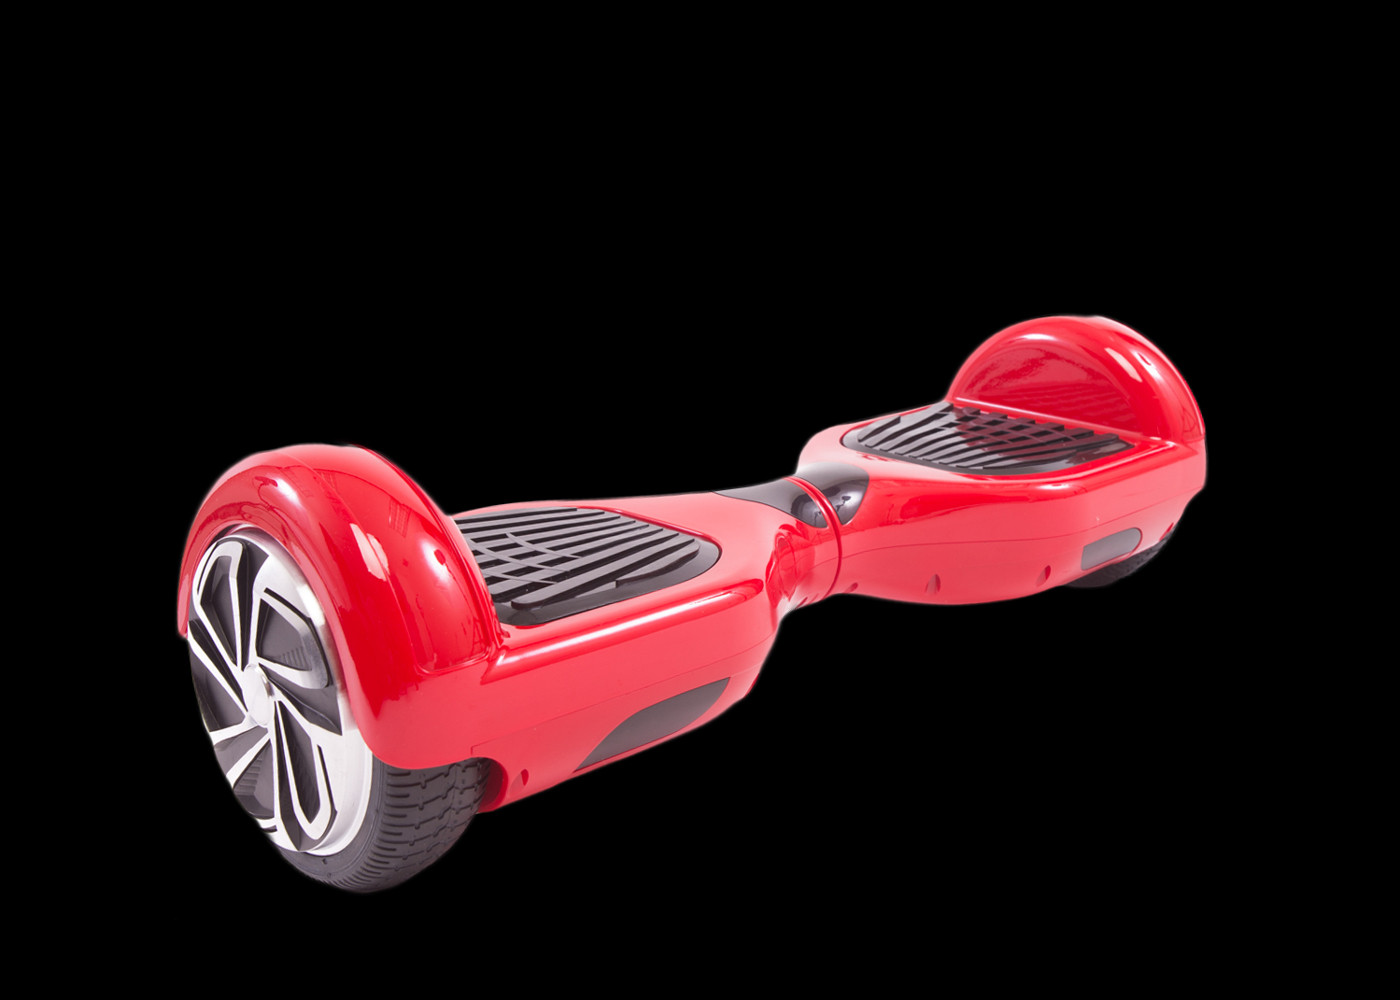 smart balance board standard red hover board nation. Black Bedroom Furniture Sets. Home Design Ideas